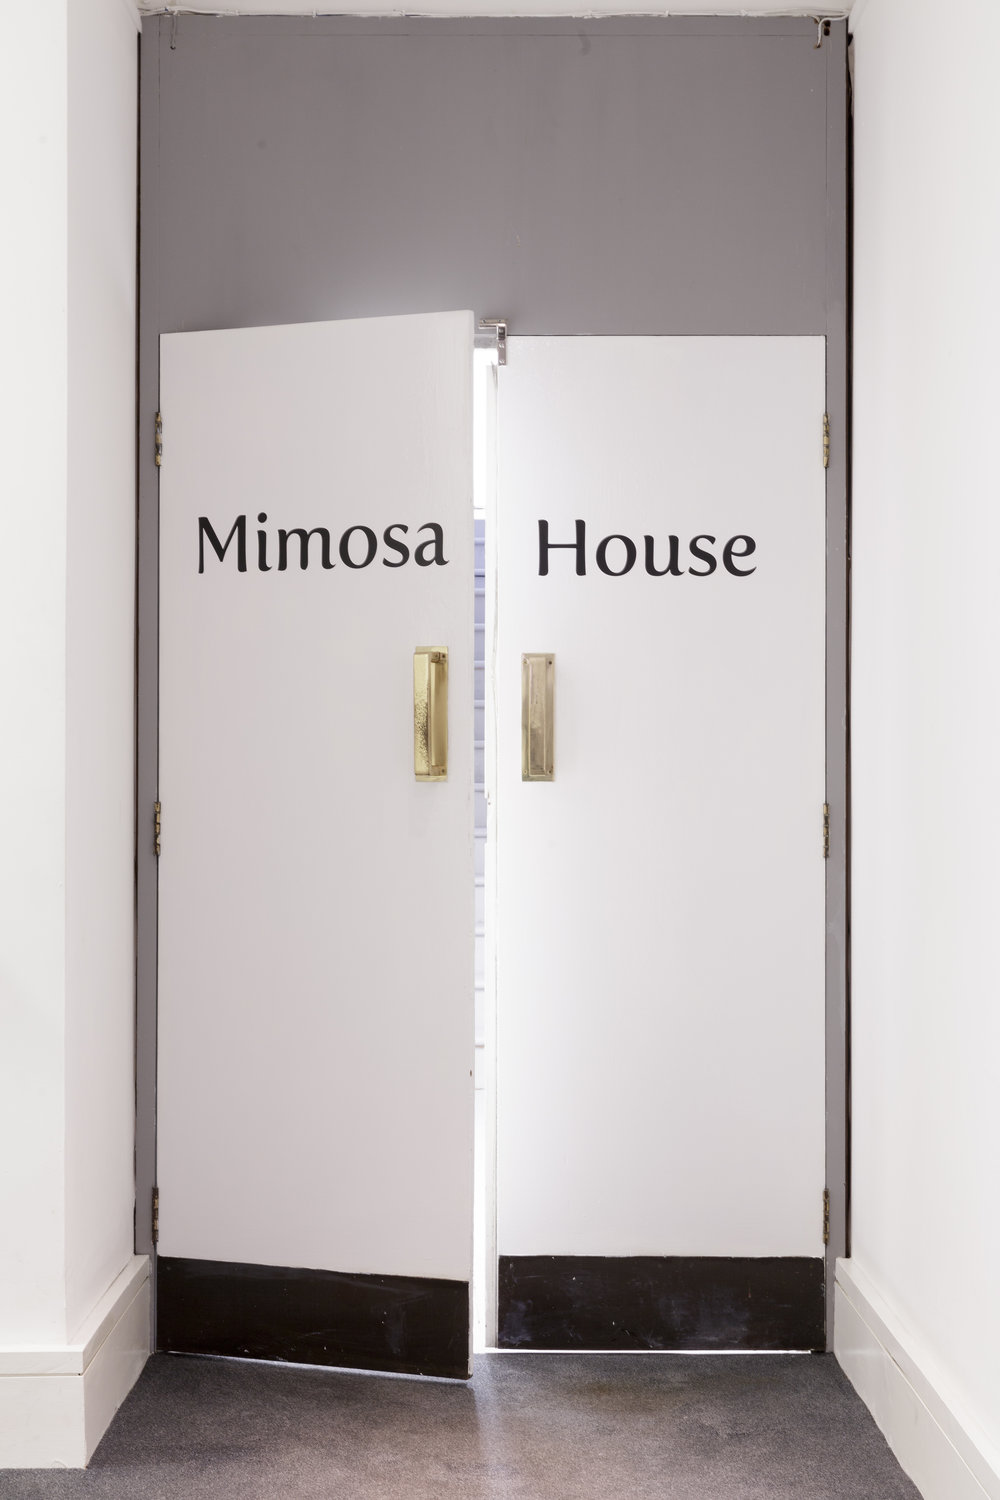 Mimosa House interior entrance, Photo: Tim Bowditch.